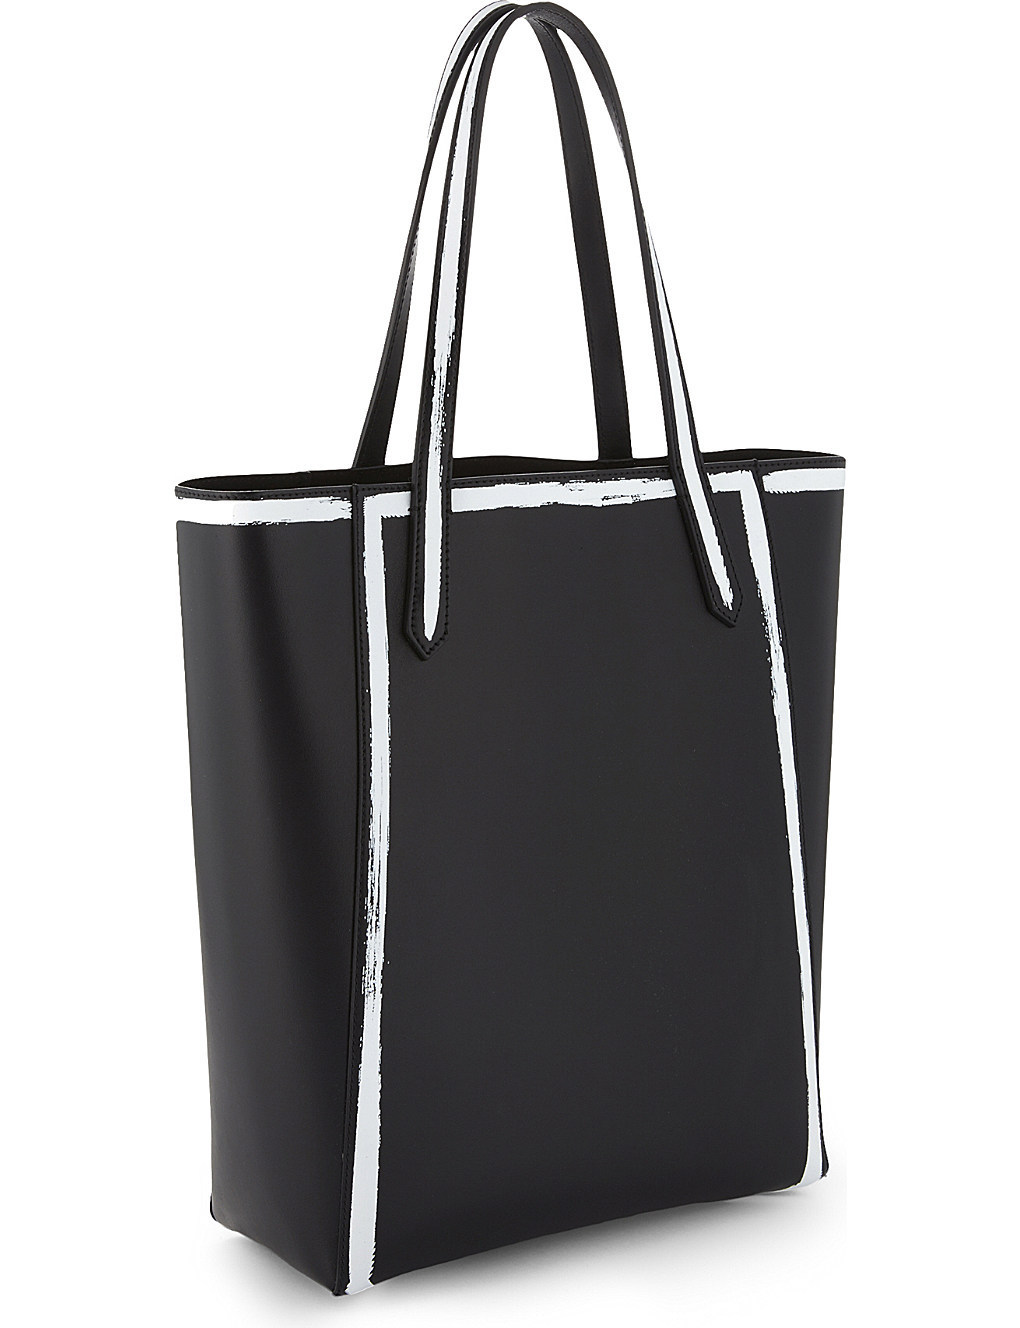 【GIVENCHY】Stargate グラフィティ− トートバッグ★関送込